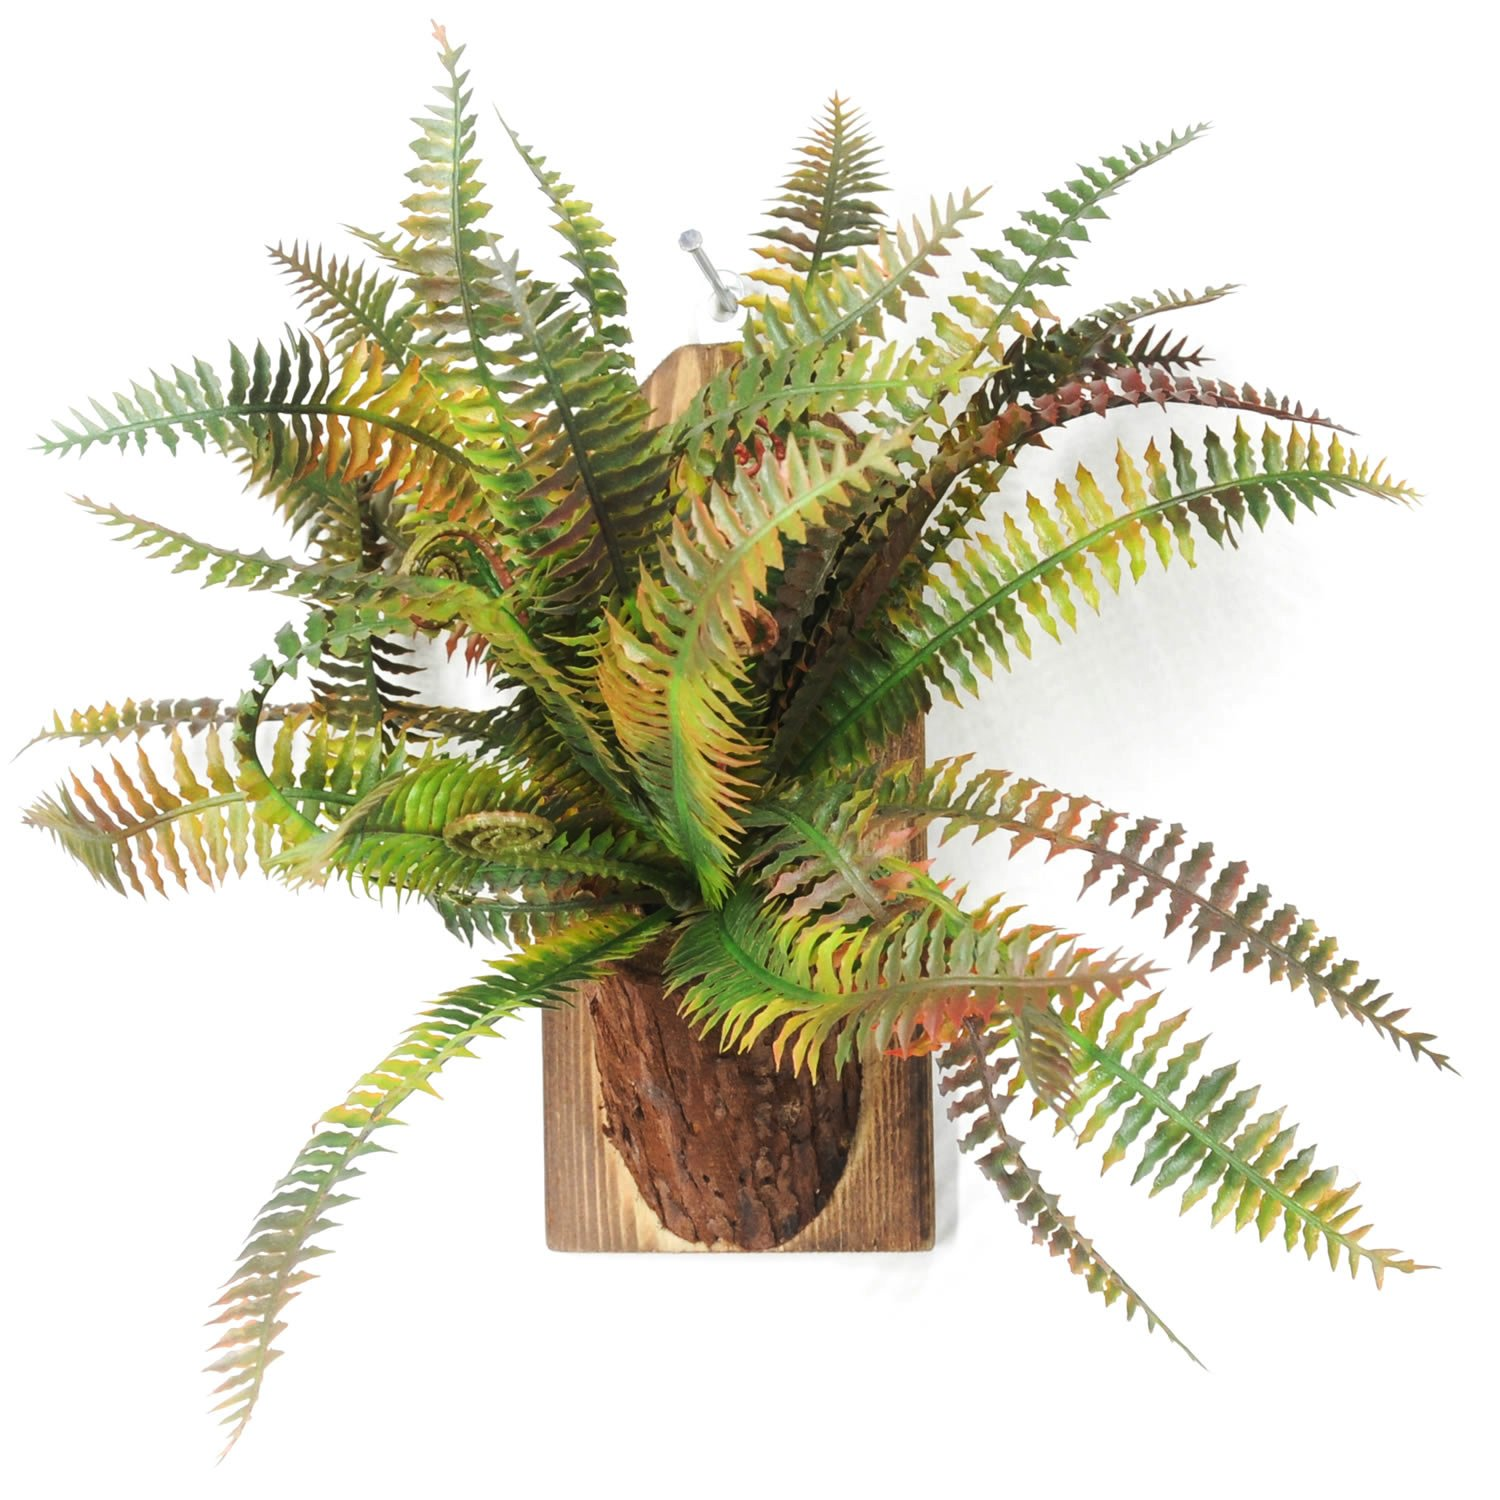 Velener Wall-Hanging Fake Grass in Wood Vase Artificial Succulents for Home Decor (Brown, Green)